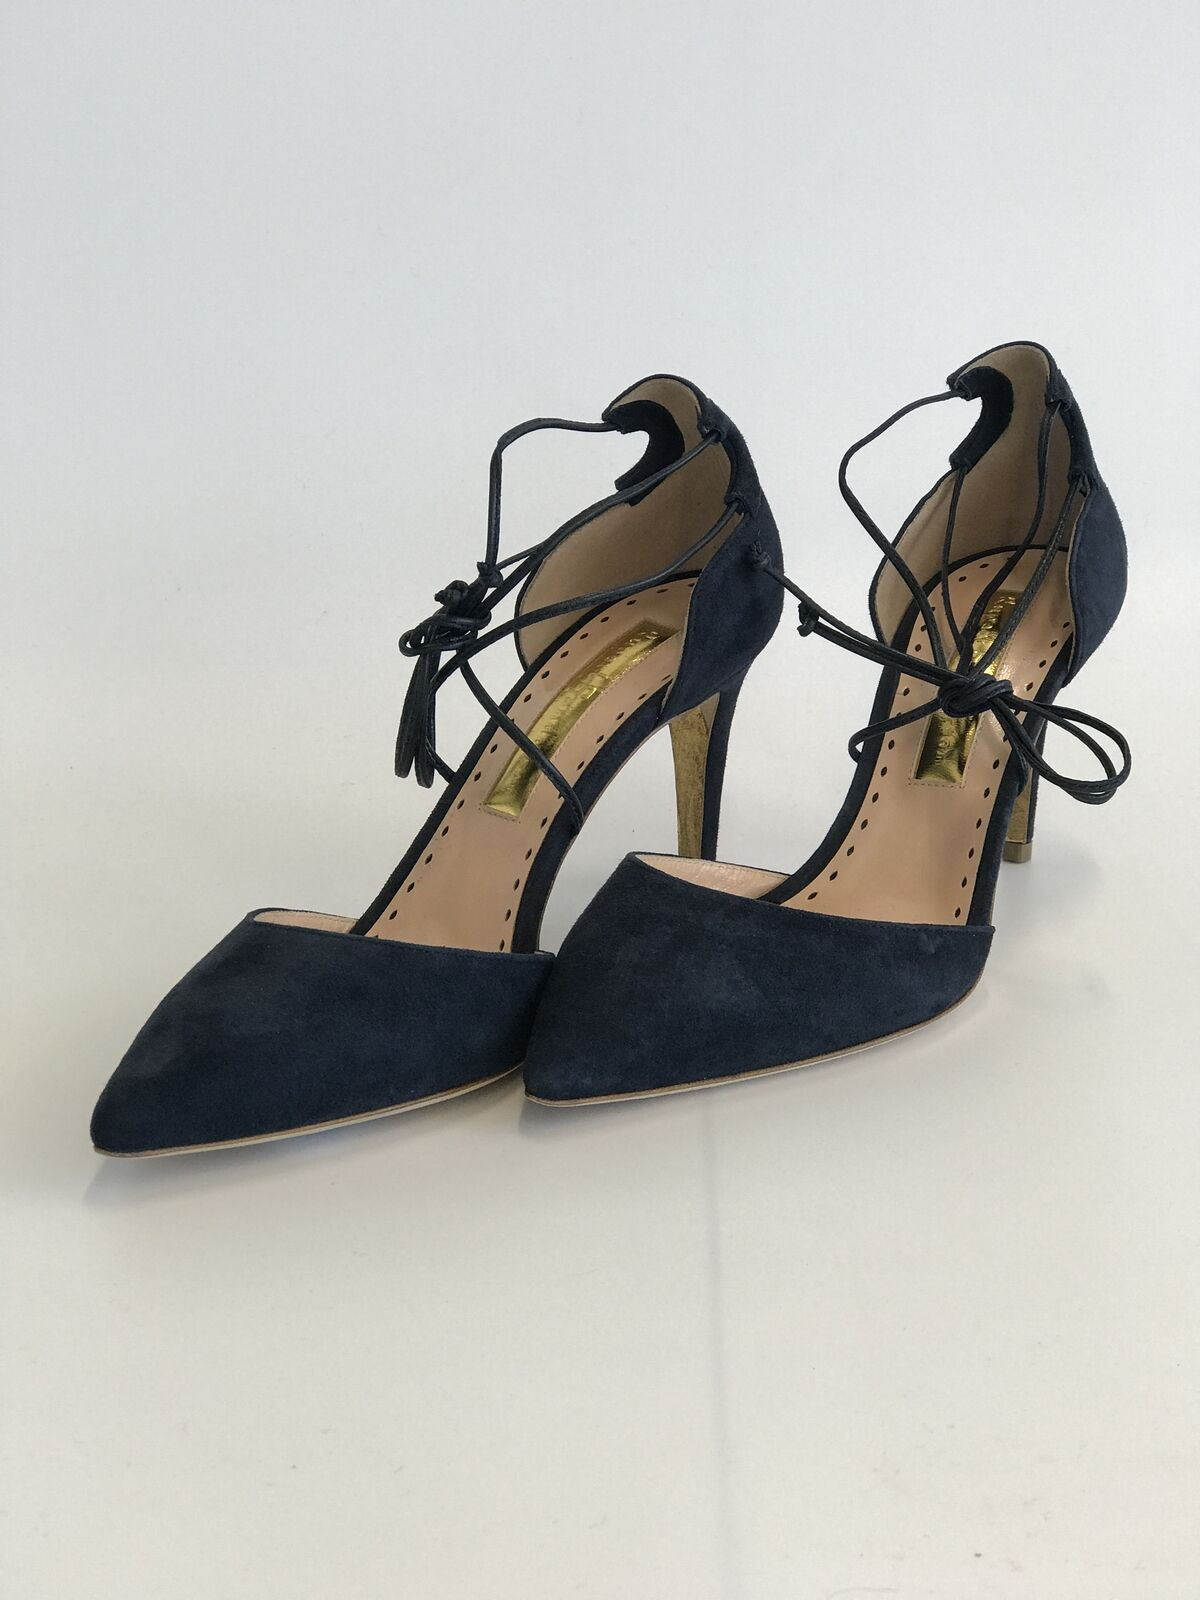 Rupert Sanderson London Irma Lace Up Pointed Toe Pumps - Size 38.5